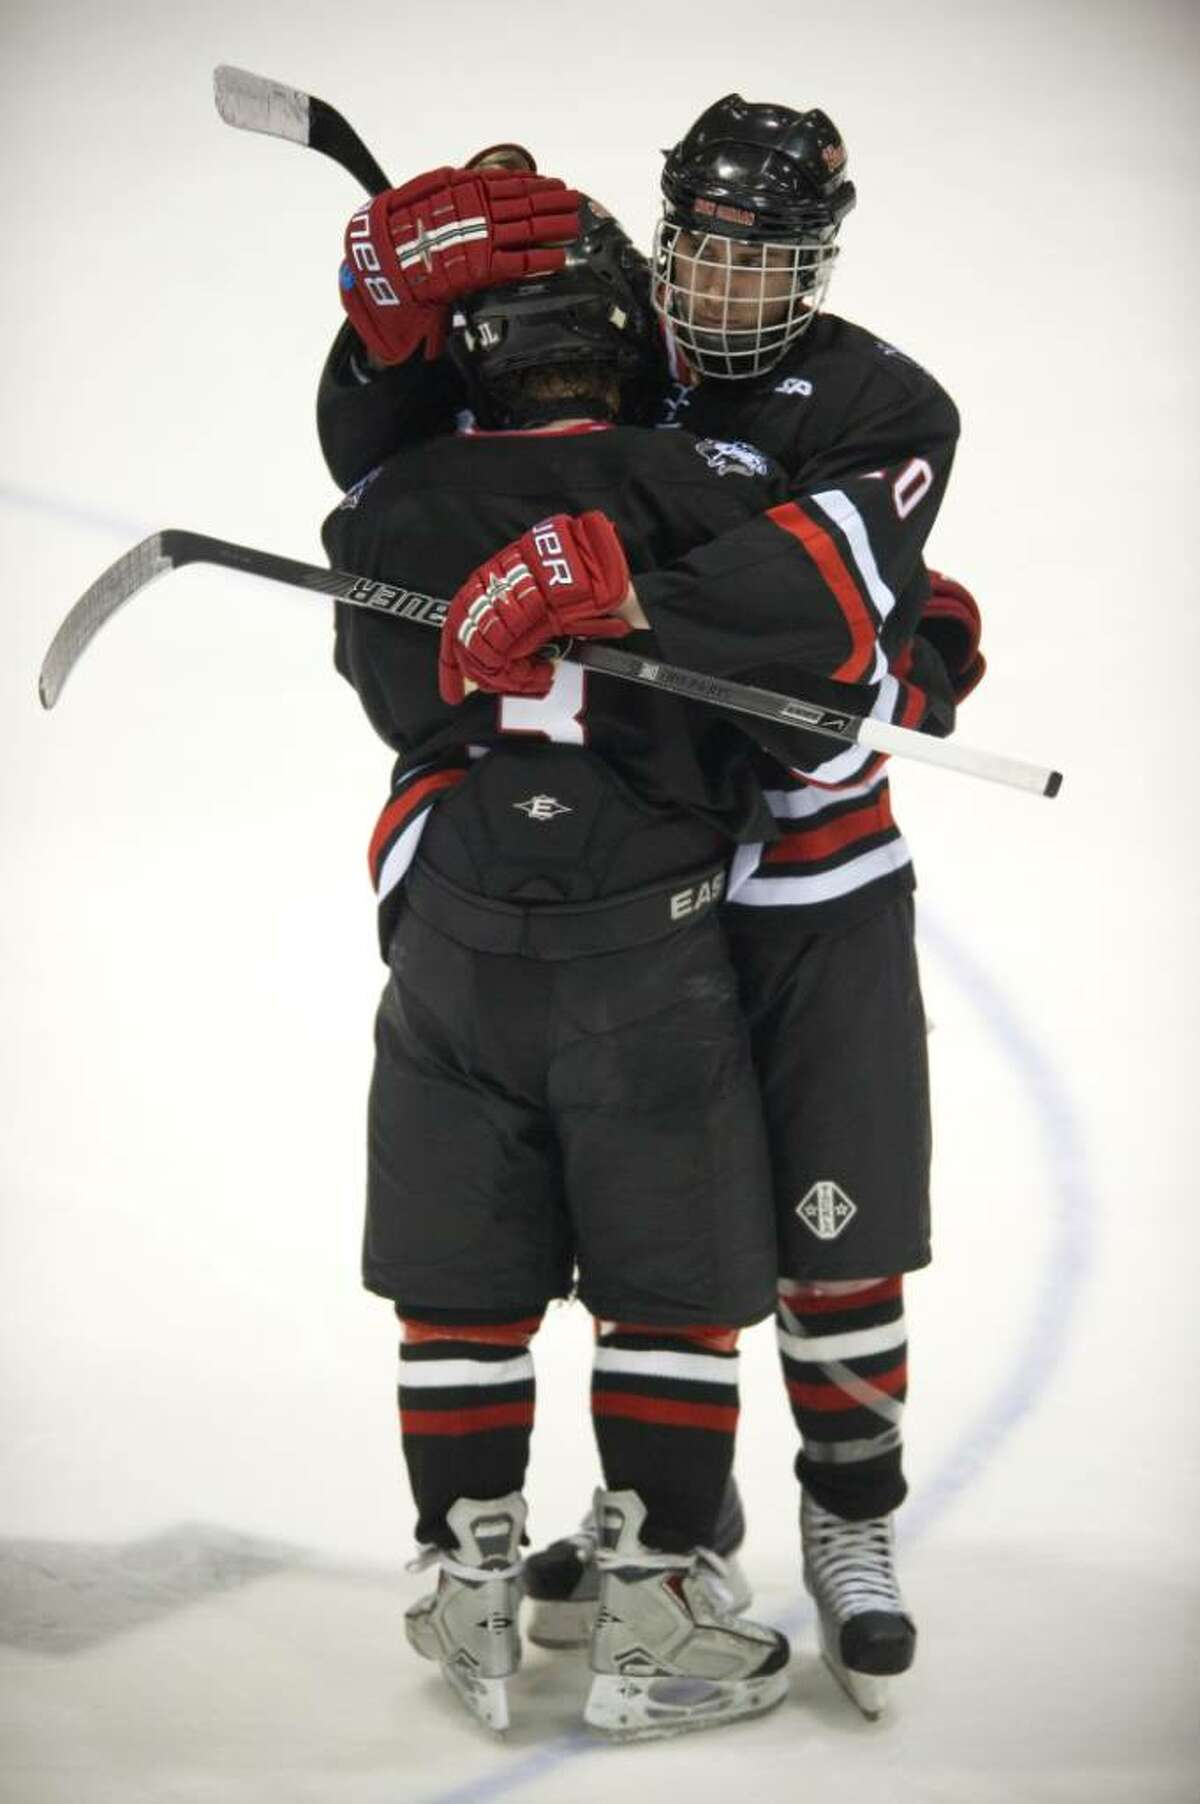 New Canaan's Andrew Leslie, left, and Jake Granito, right, react to losing to Fairfield Prep in the 2010 CIAC Division I boys ice hockey state semifinal game at Ingalls Rink in New Haven, Conn. on Thursday, March 18, 2010.